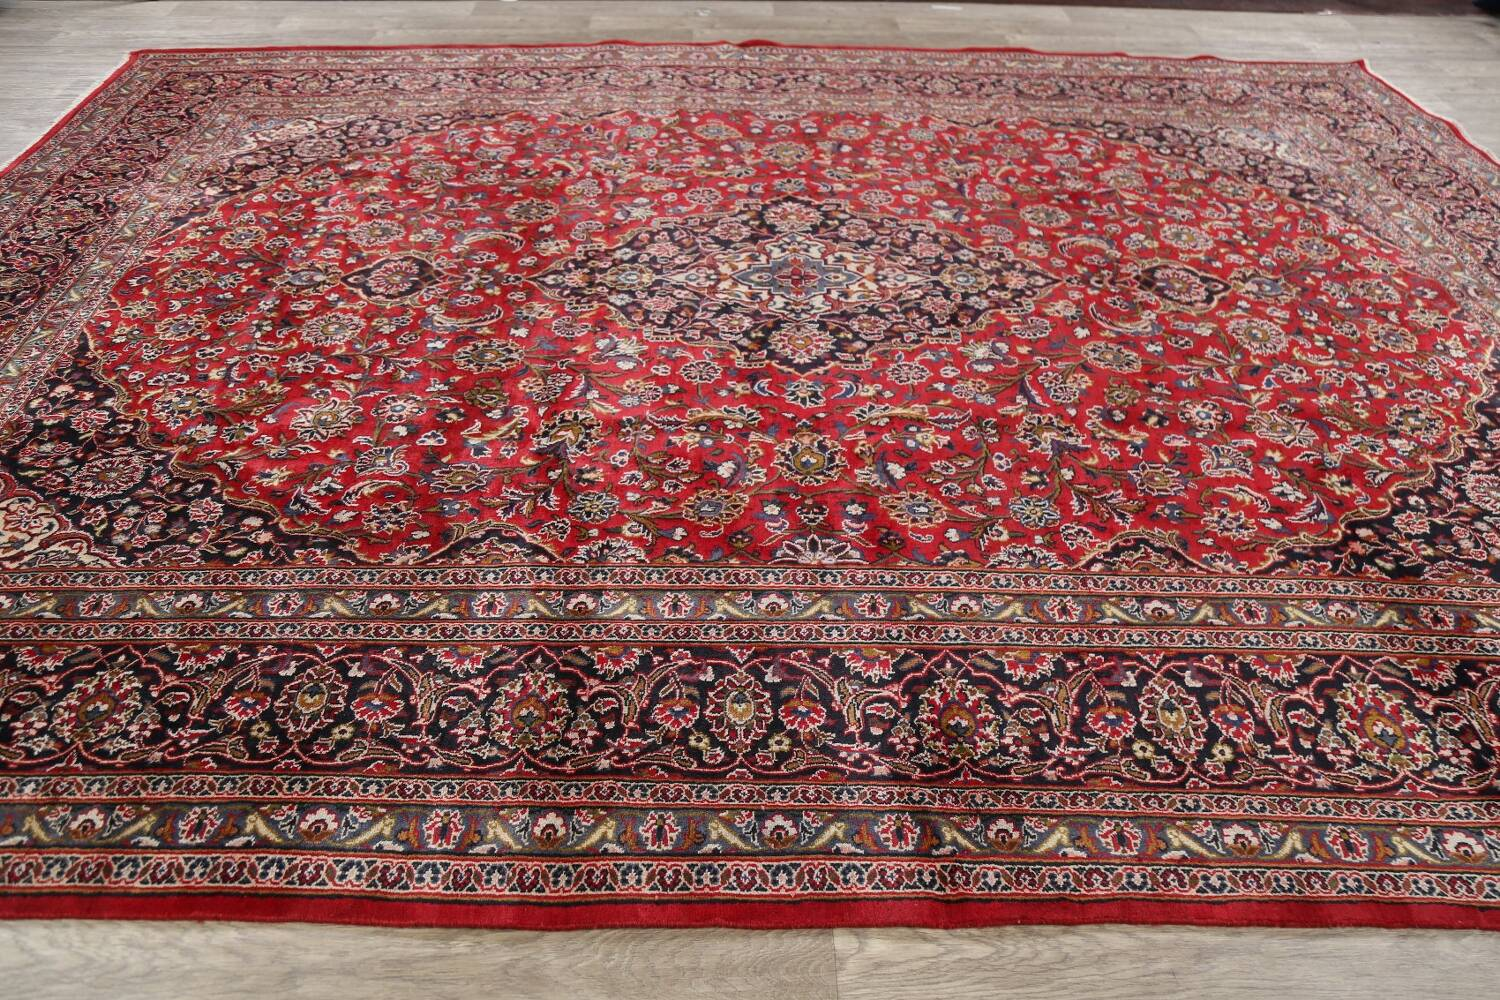 Vintage Floral Mashad Persian Red Area Rug 9x13 image 20